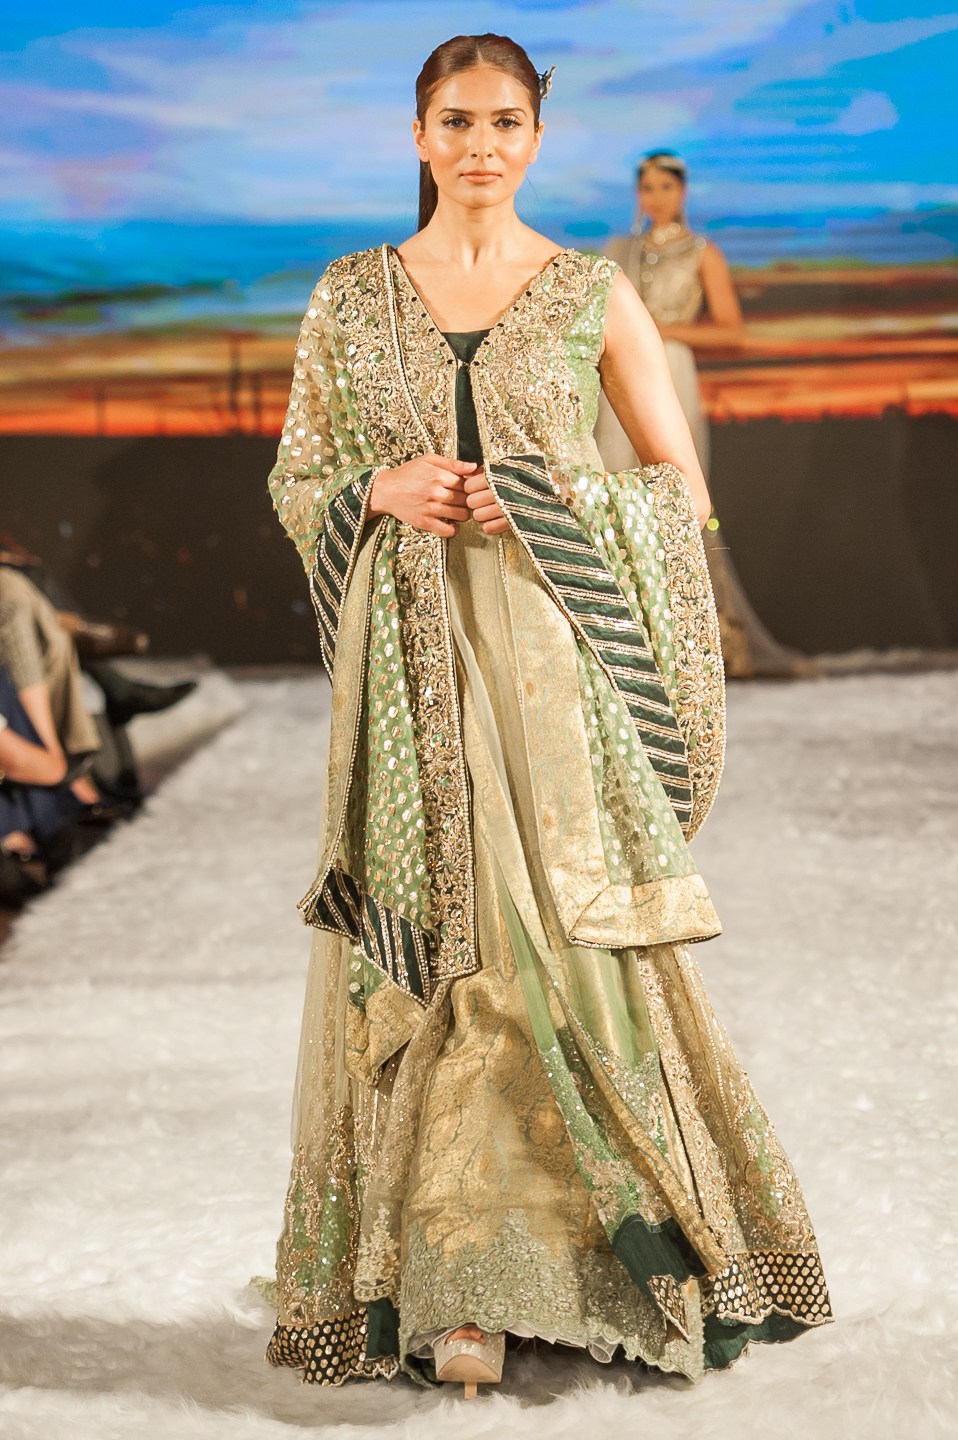 Sarah Salman - Pakistan Fashion Week London - Photography by Shahid Malik